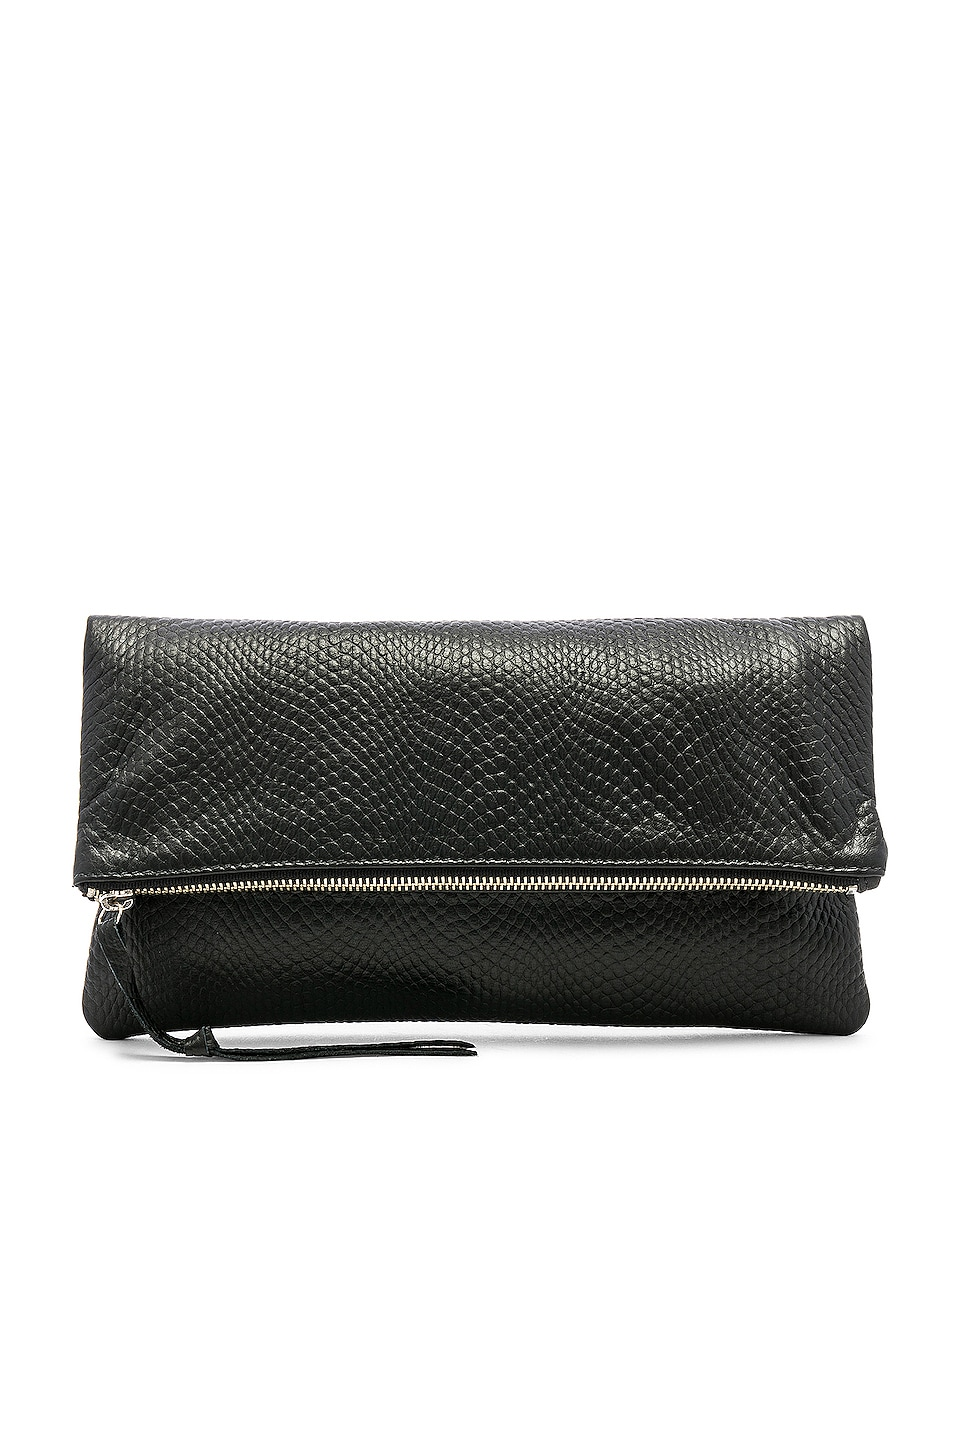 Oliveve Anastasia Clutch in Black Snake